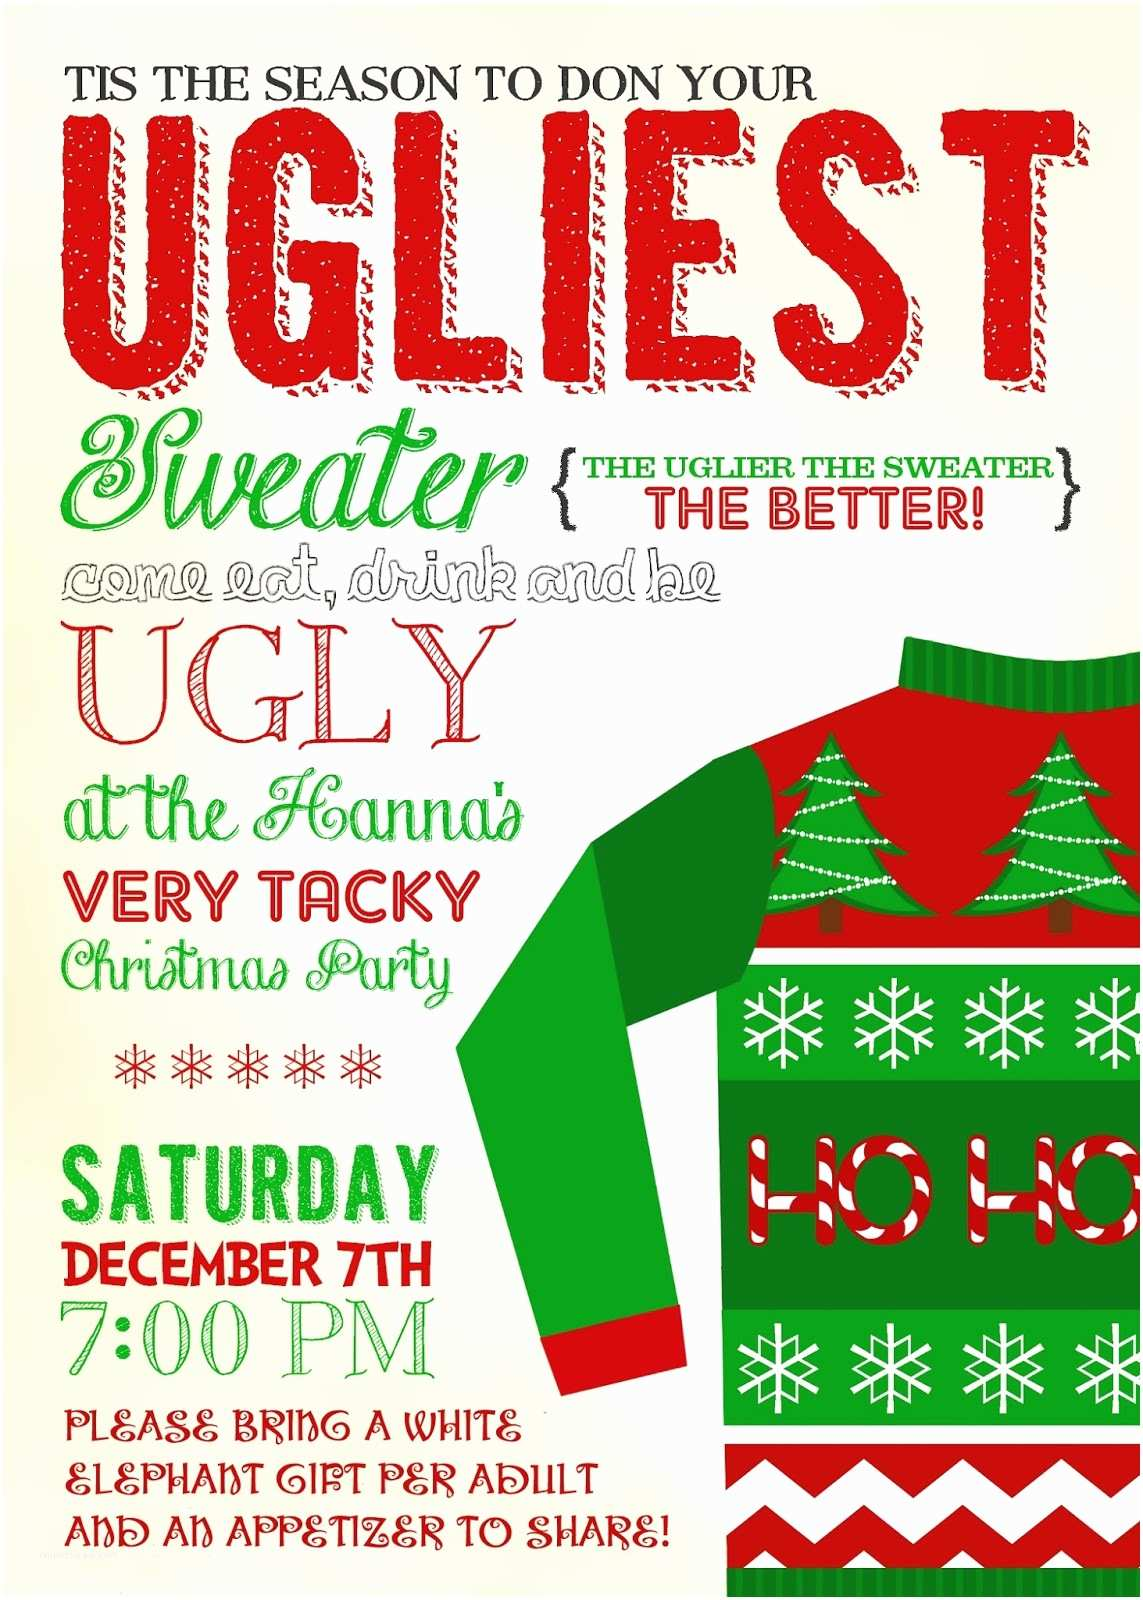 Free Ugly Sweater Party Invitations Christmas In July Invitations Templates